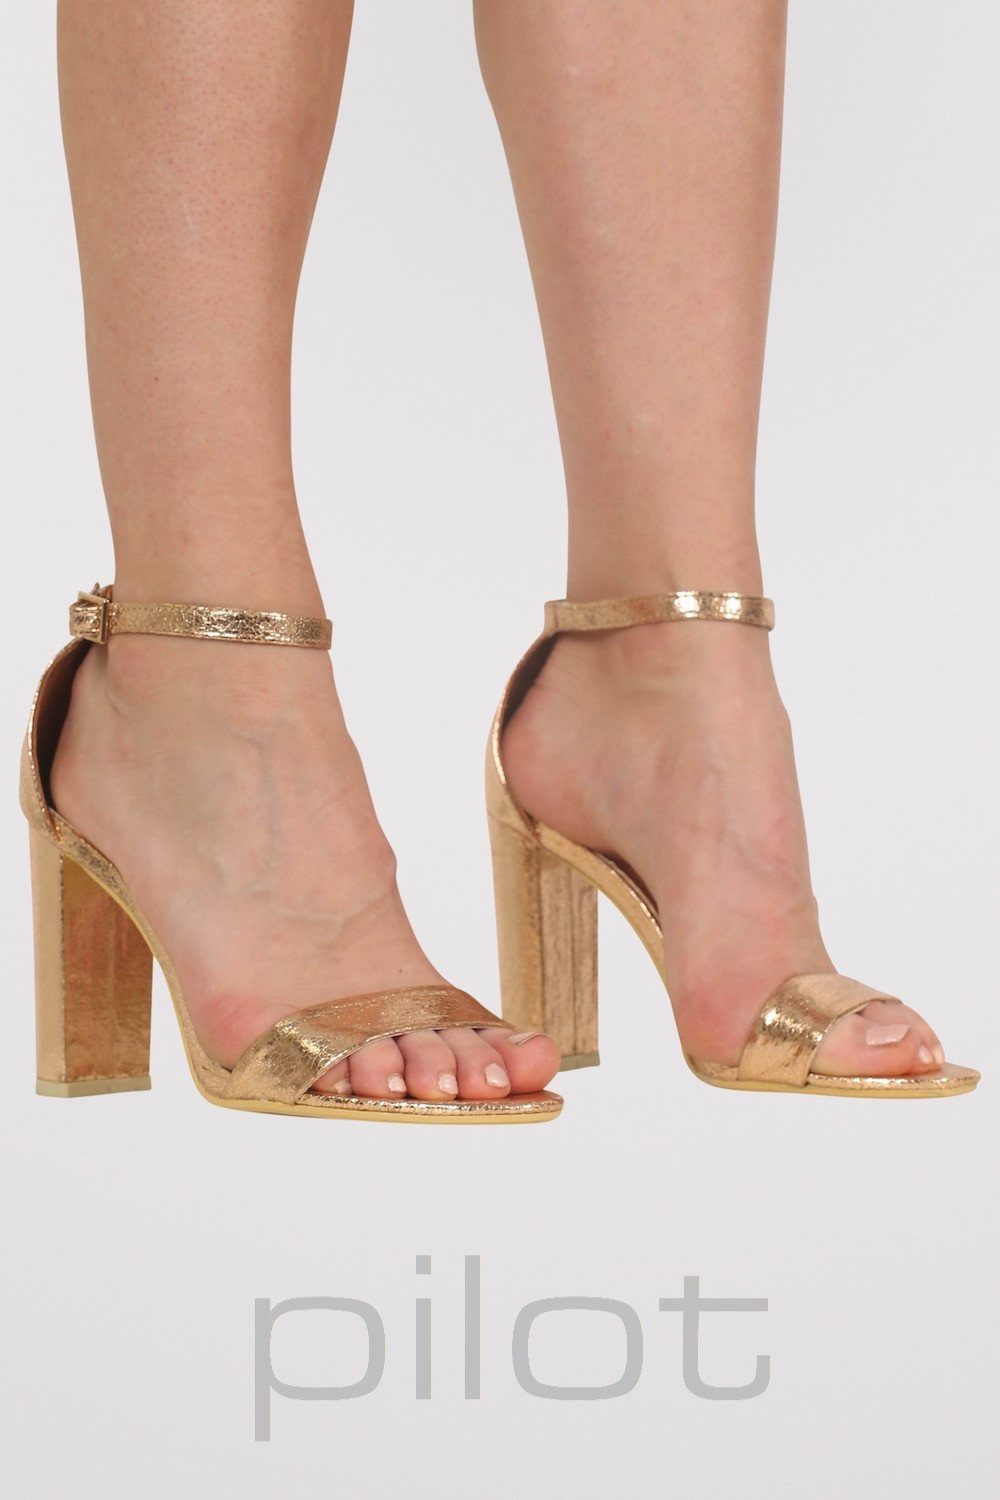 82f2eff06e3b Block Heel Barely There Strappy Sandals in Rose Gold MODEL FRONT